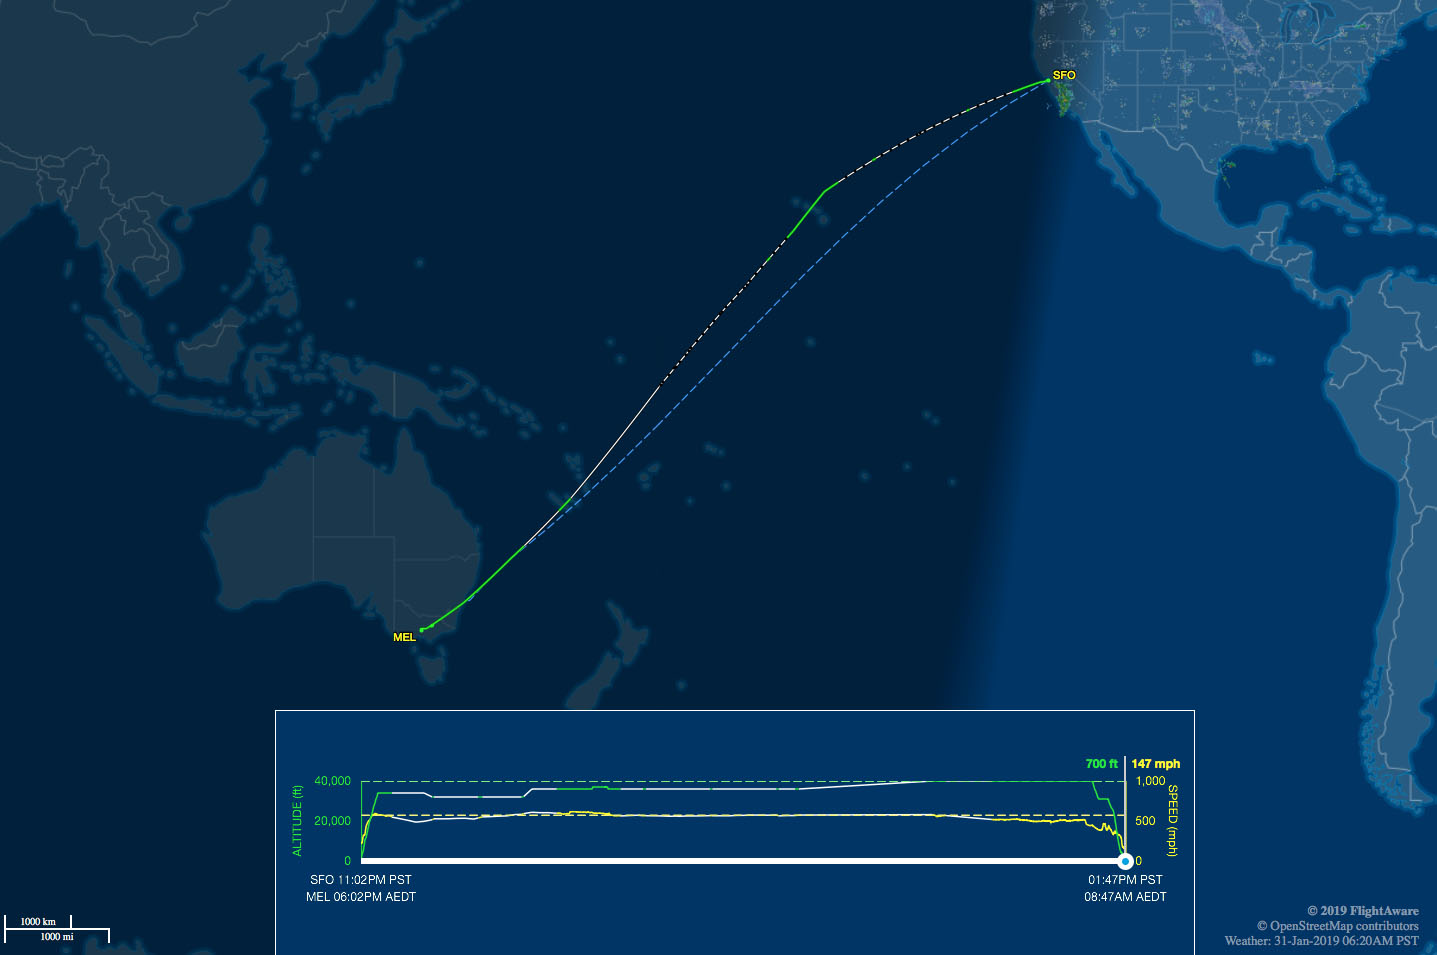 SFO to Australia route map